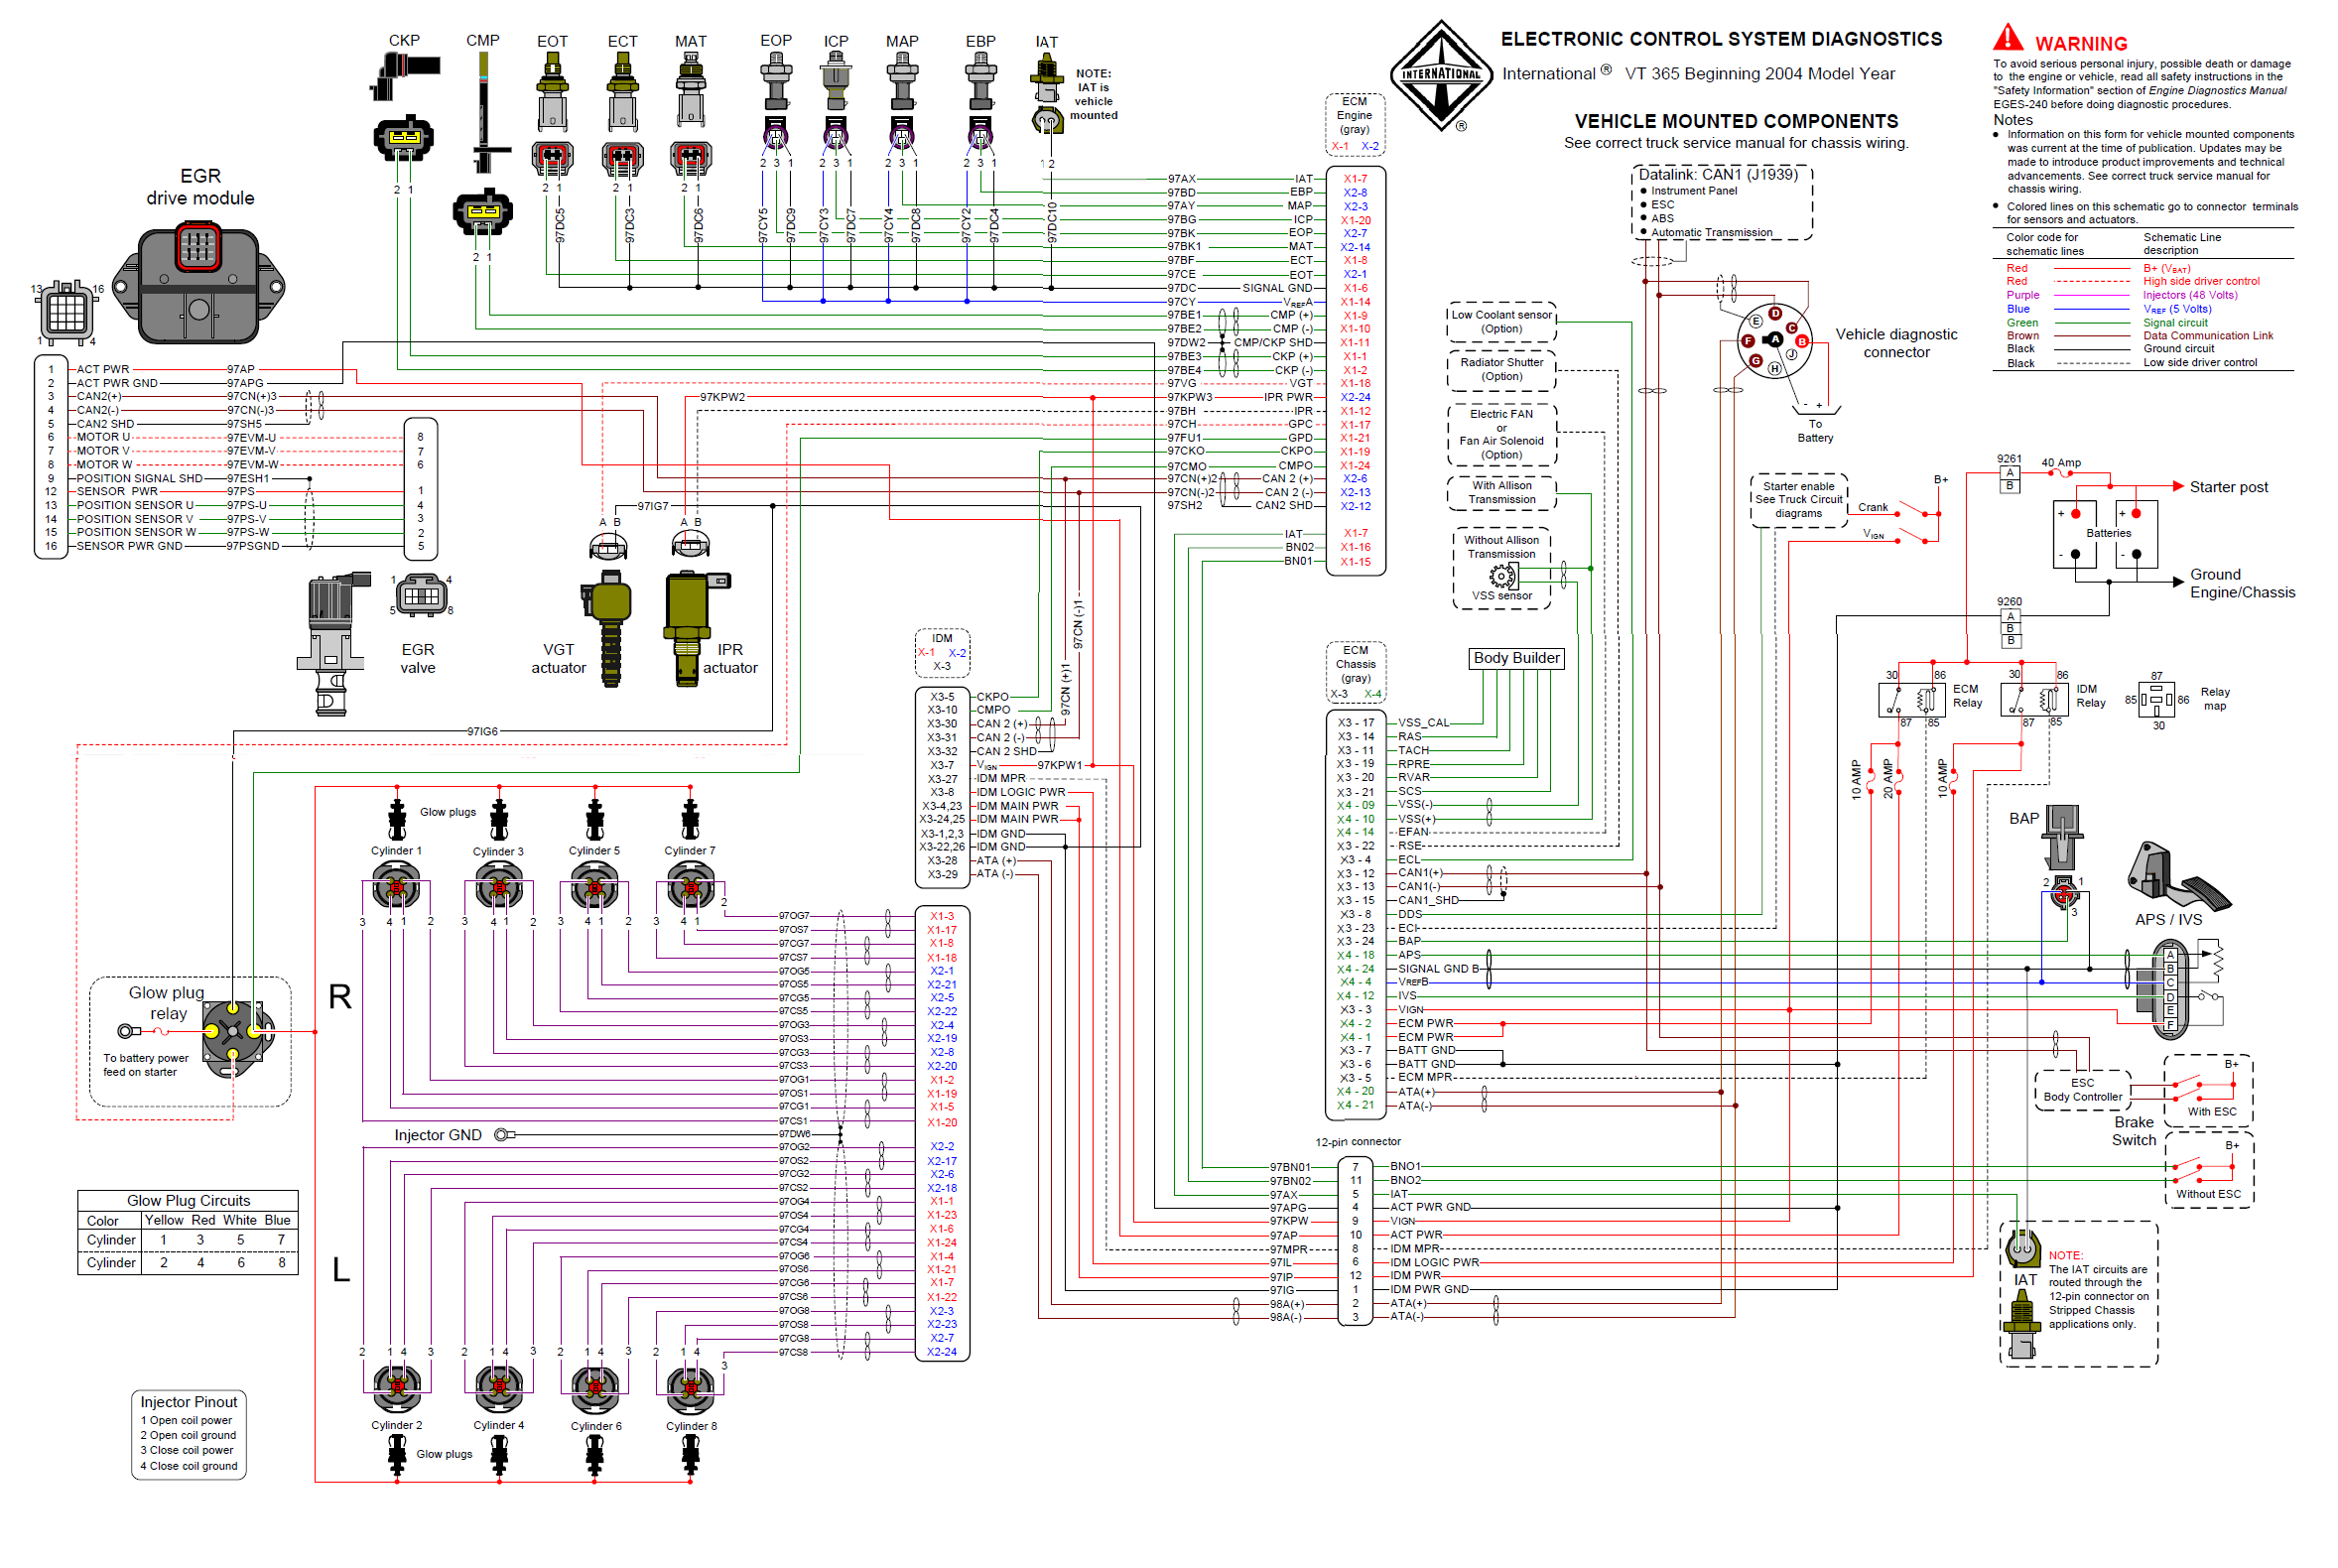 2014 12 14 225333 Vt365 Png 2356 1580 Ford Diesel Electrical Wiring Diagram Ford